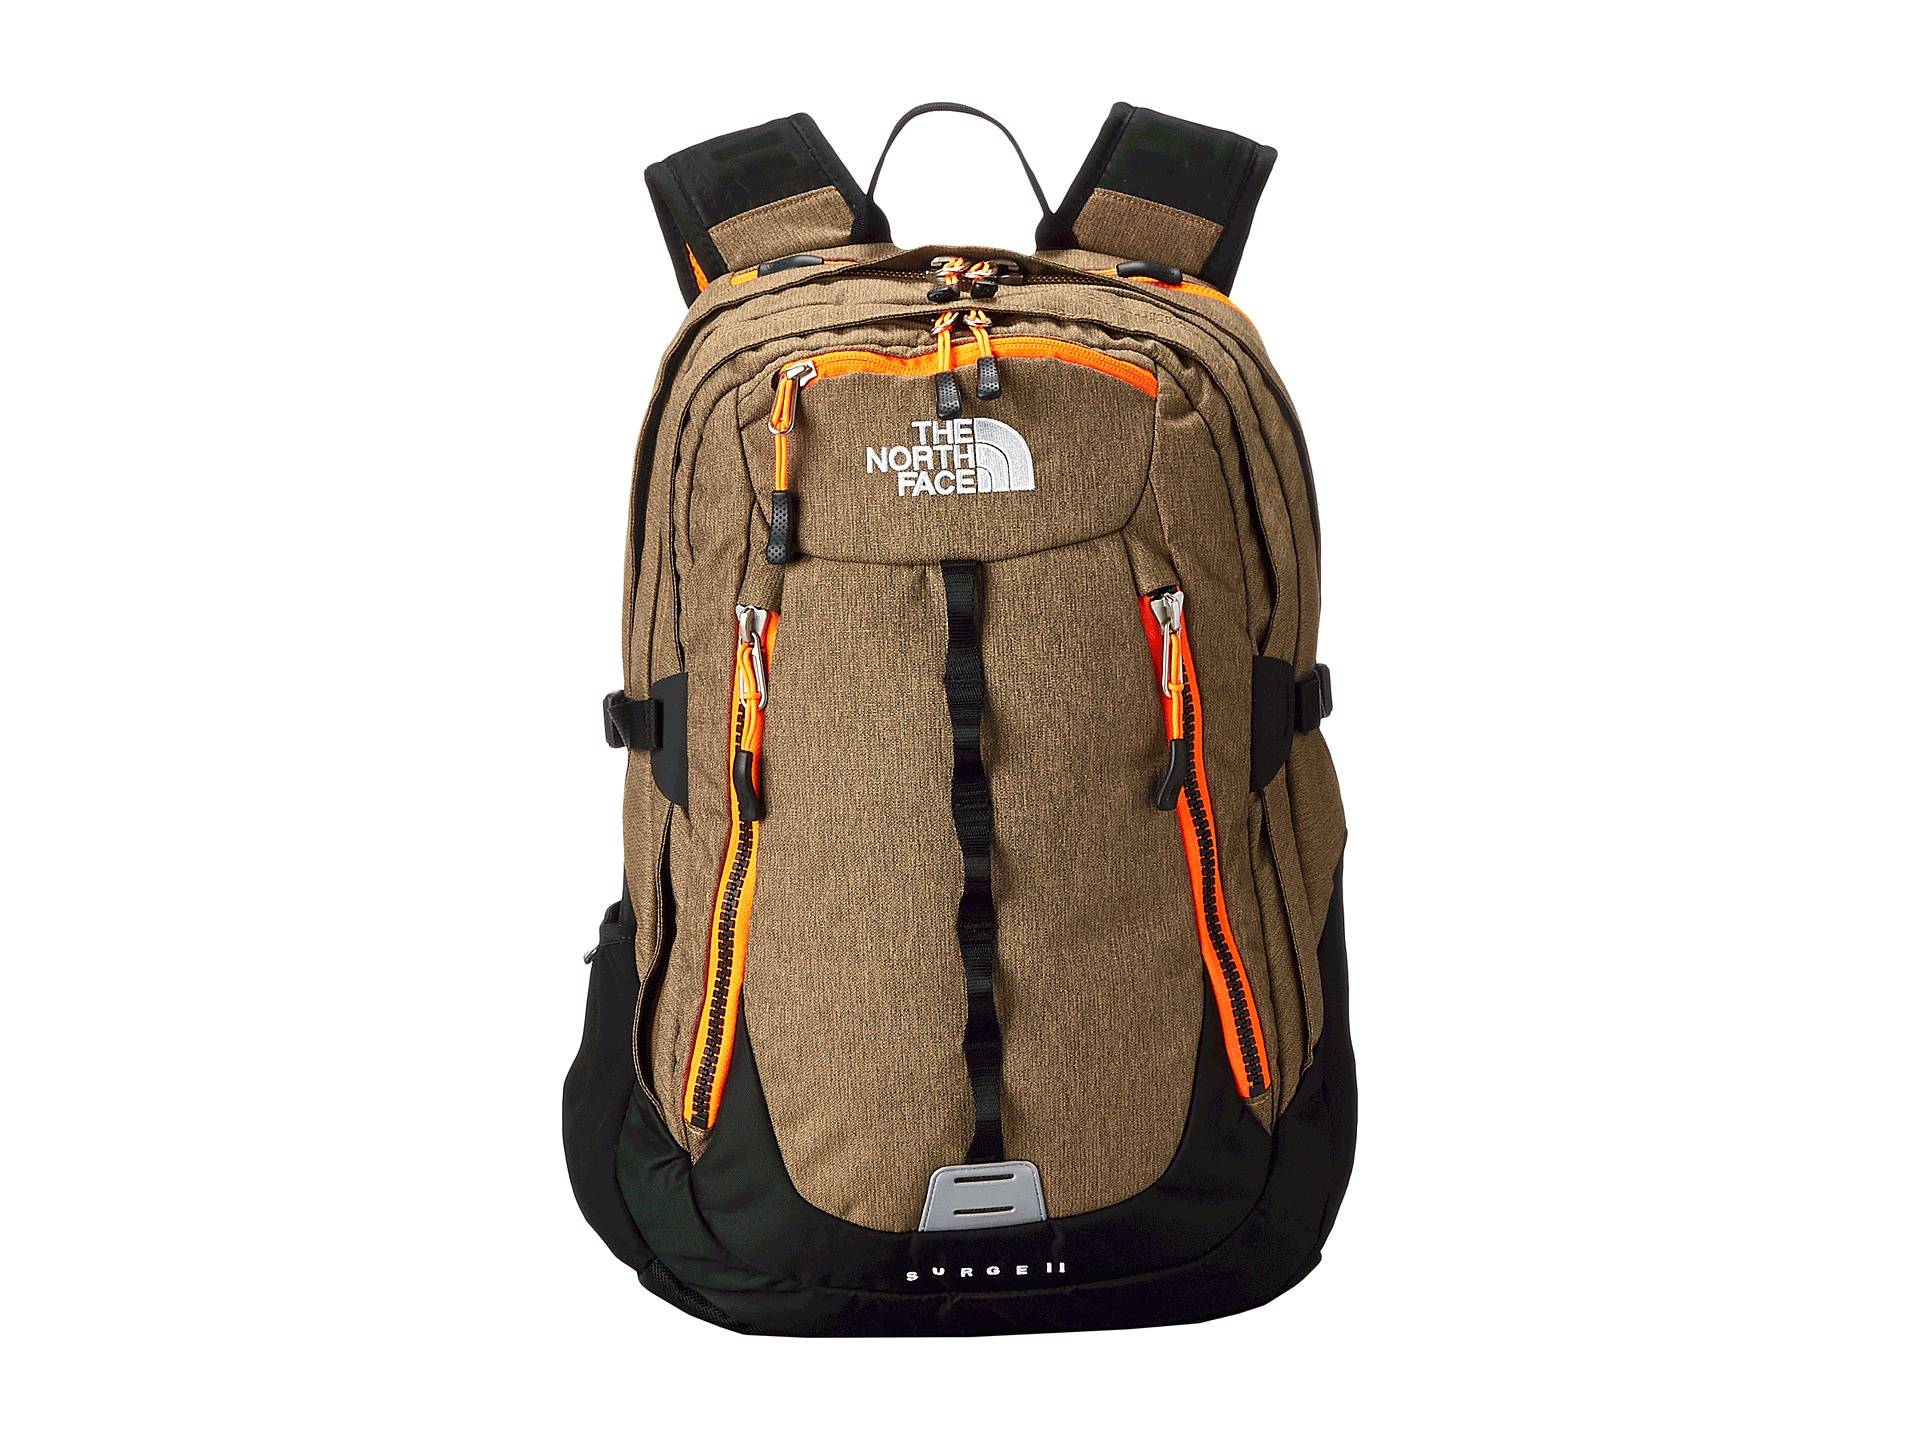 d5a5ff002 North Face Surge Ii Transit Backpack - CEAGESP